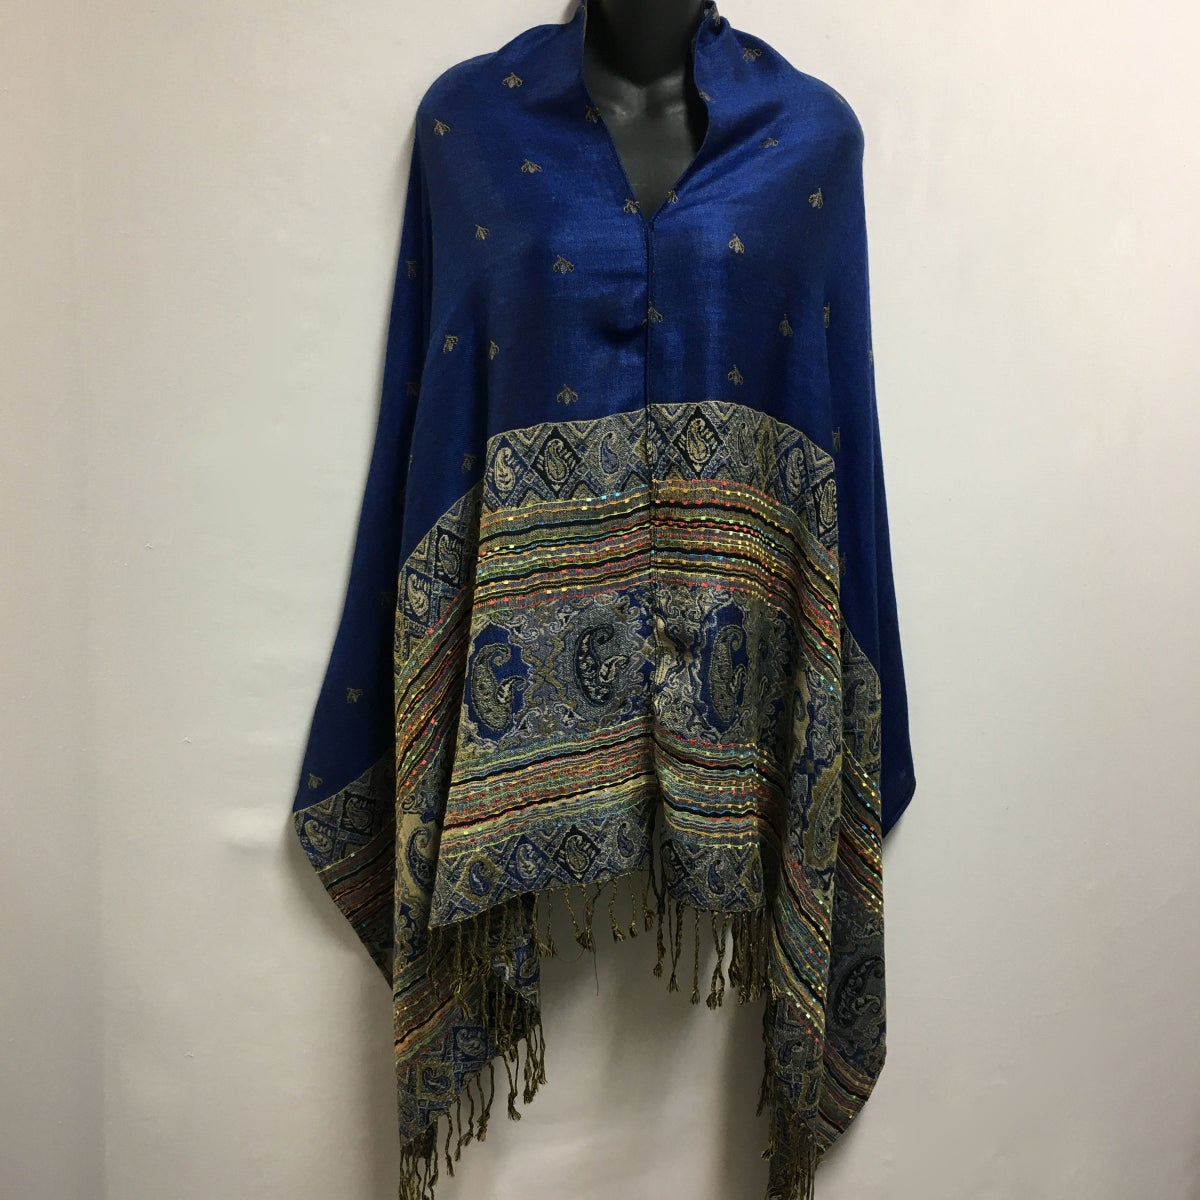 Image of Reversible Poncho Top - Wear 6 ways - Cherished Gift